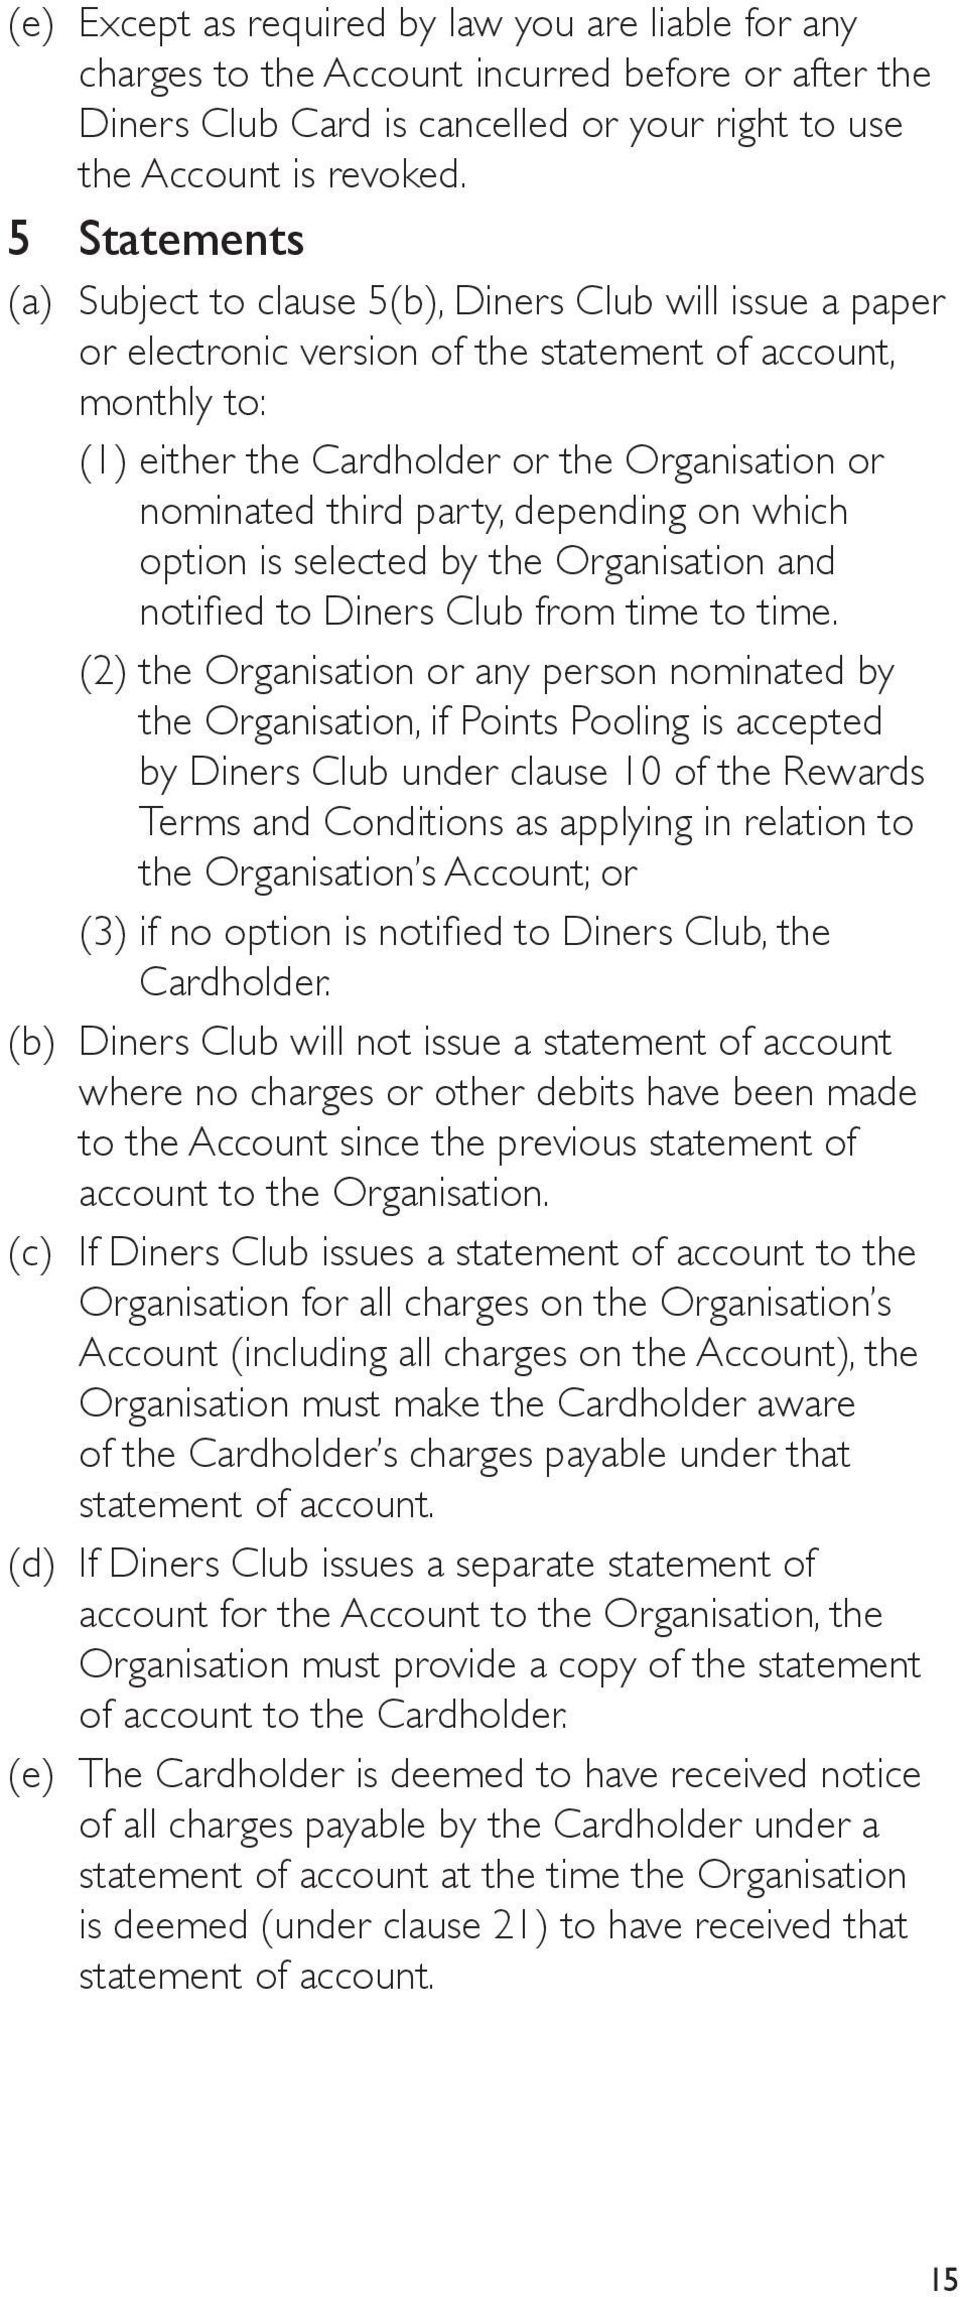 party, depending on which option is selected by the Organisation and notified to Diners Club from time to time.